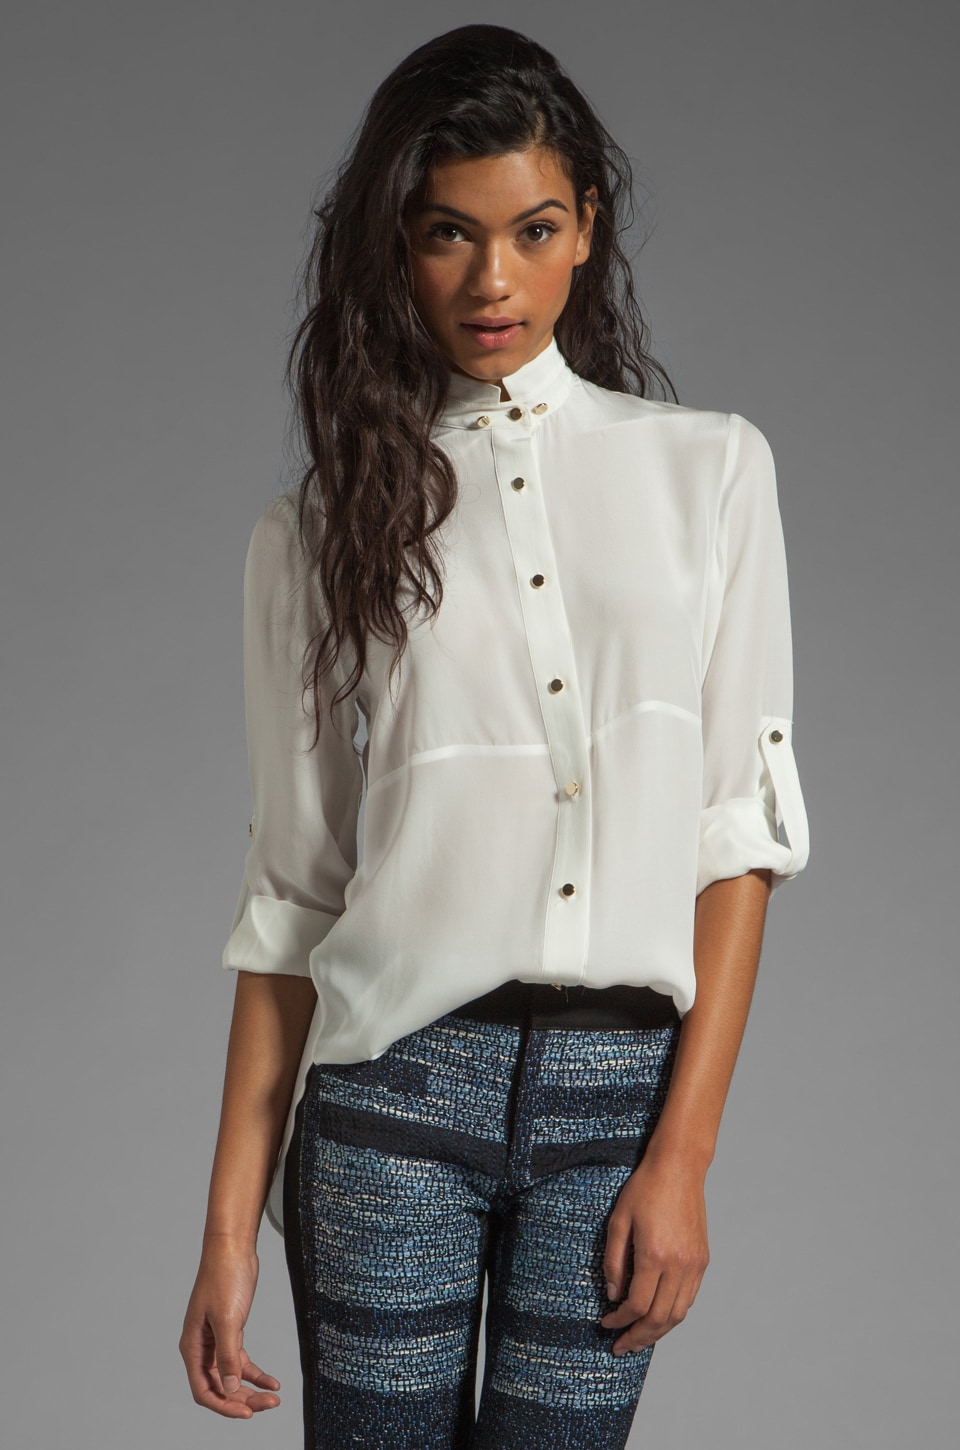 DEREK LAM 10 CROSBY Double Collar Shirt in Ivory/White